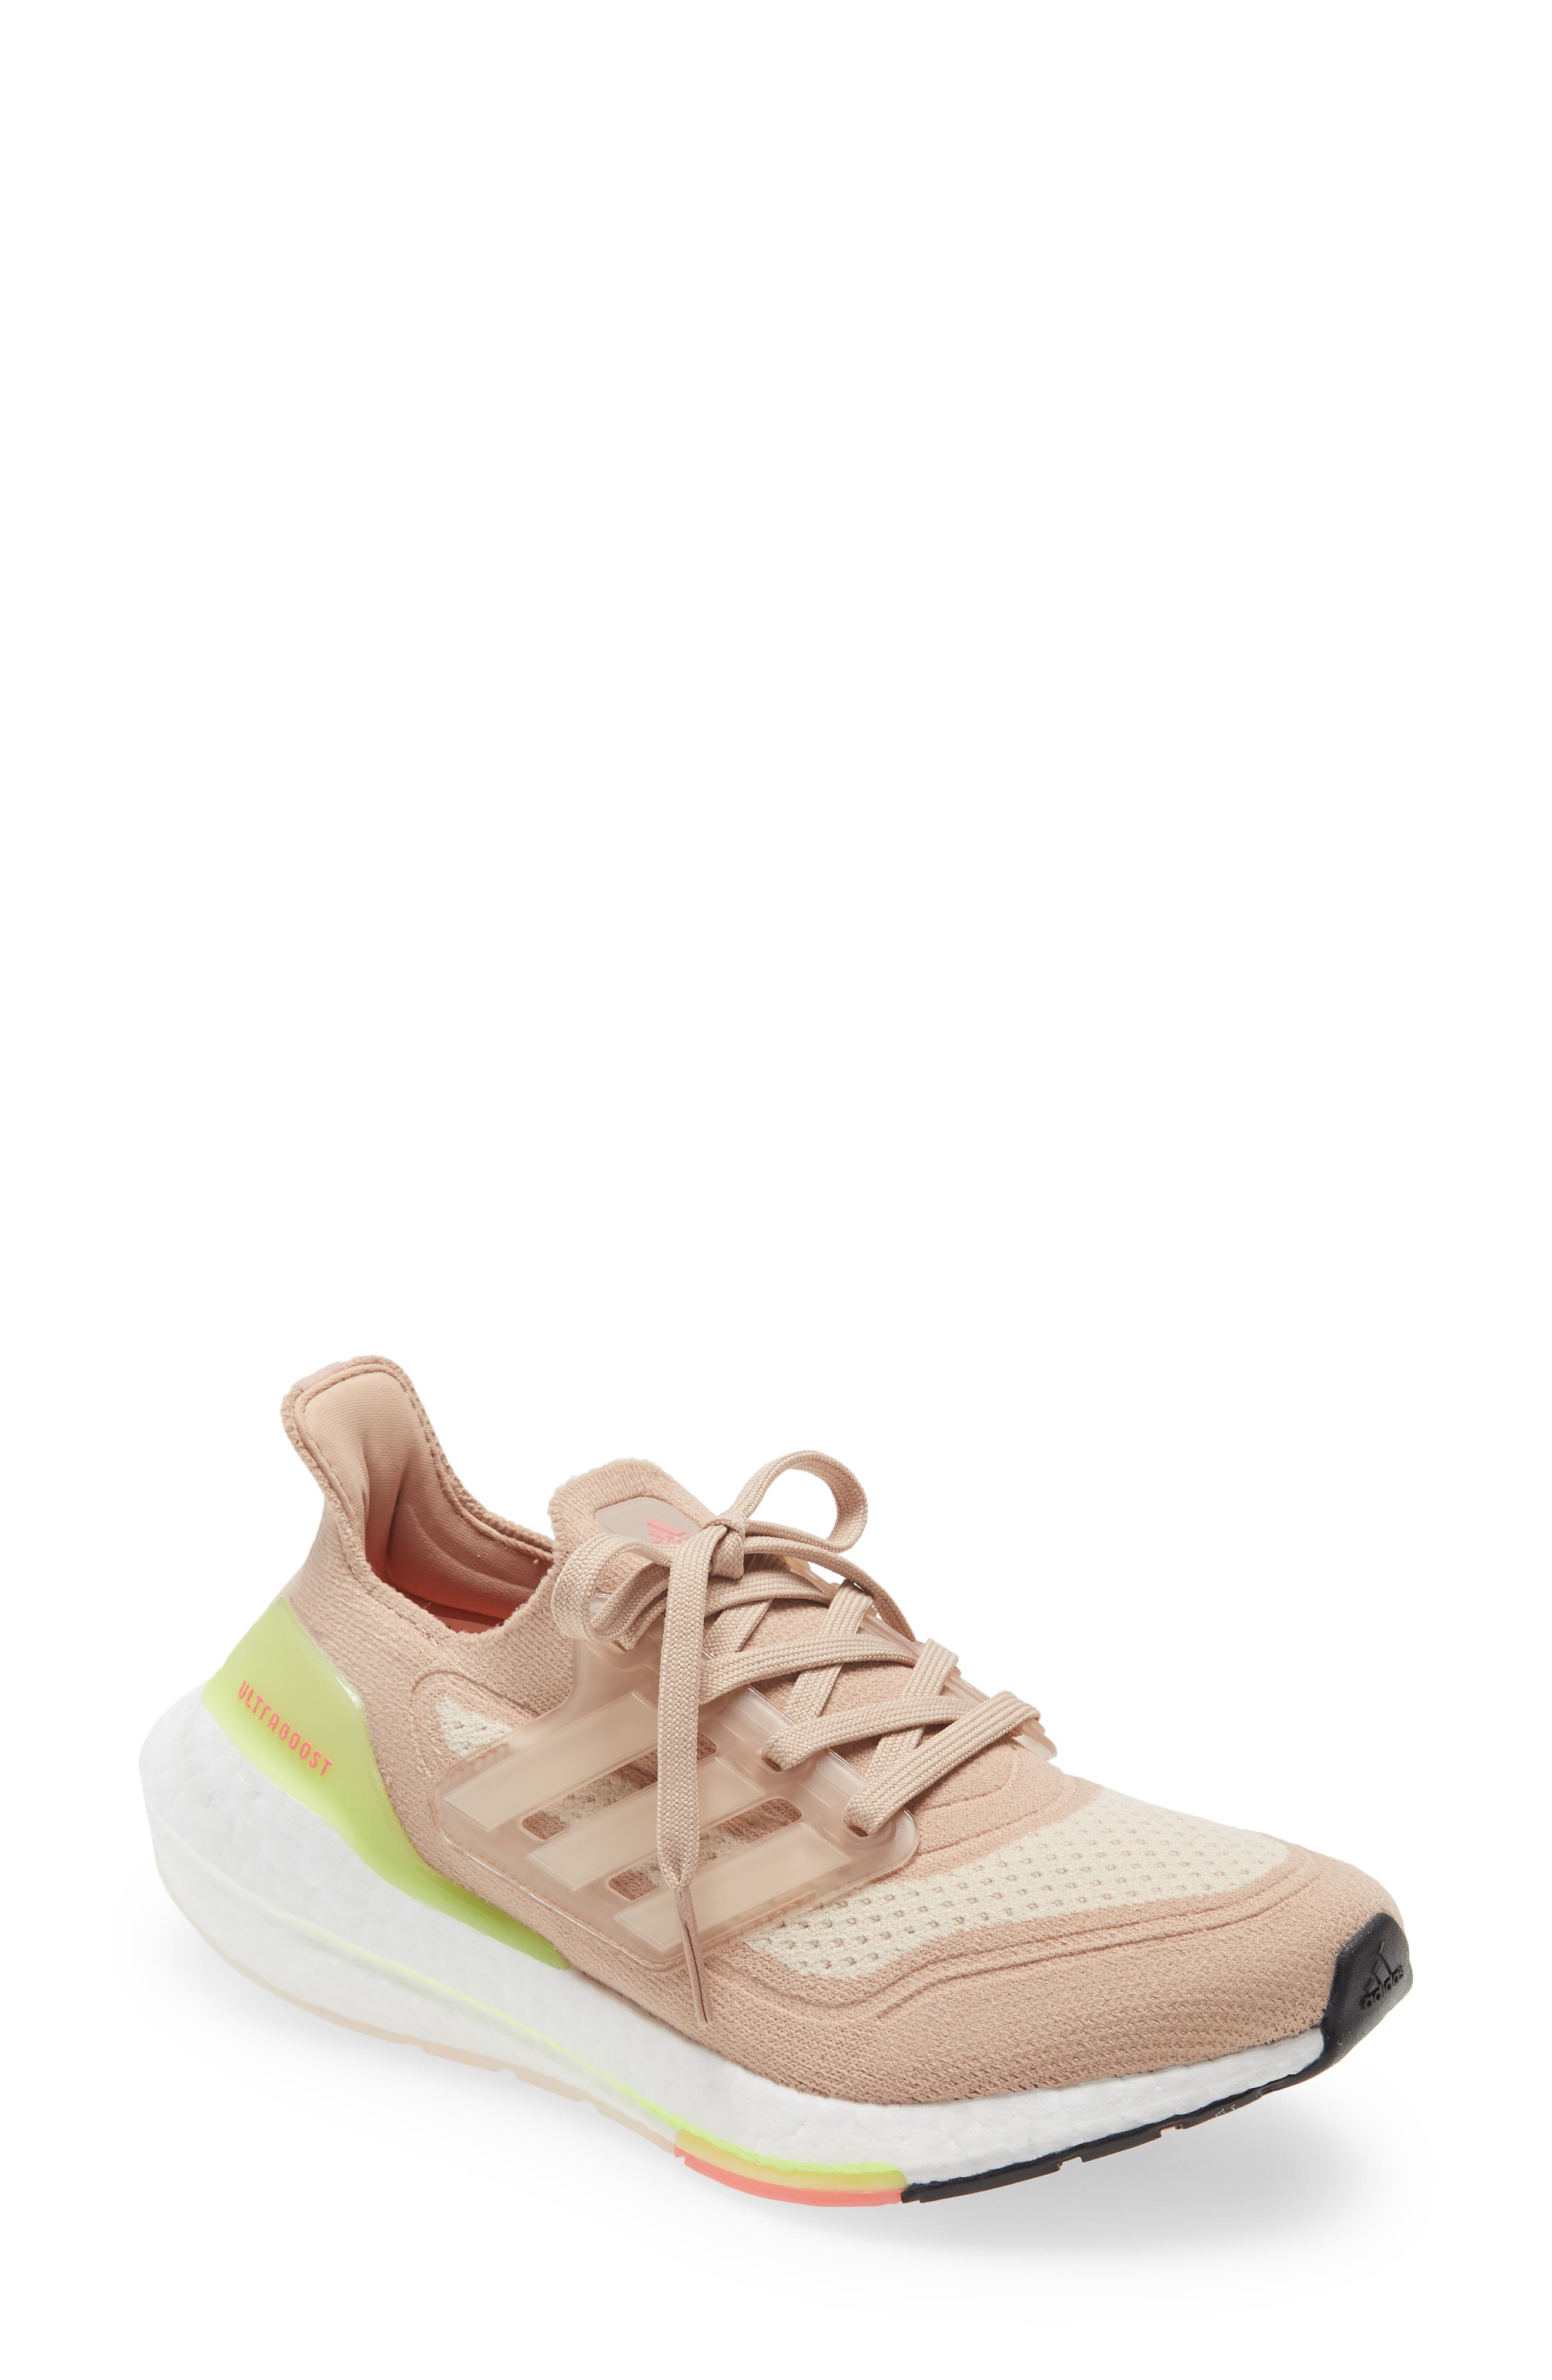 Women's adidas Fashion Trends: Shoes | Nordstrom